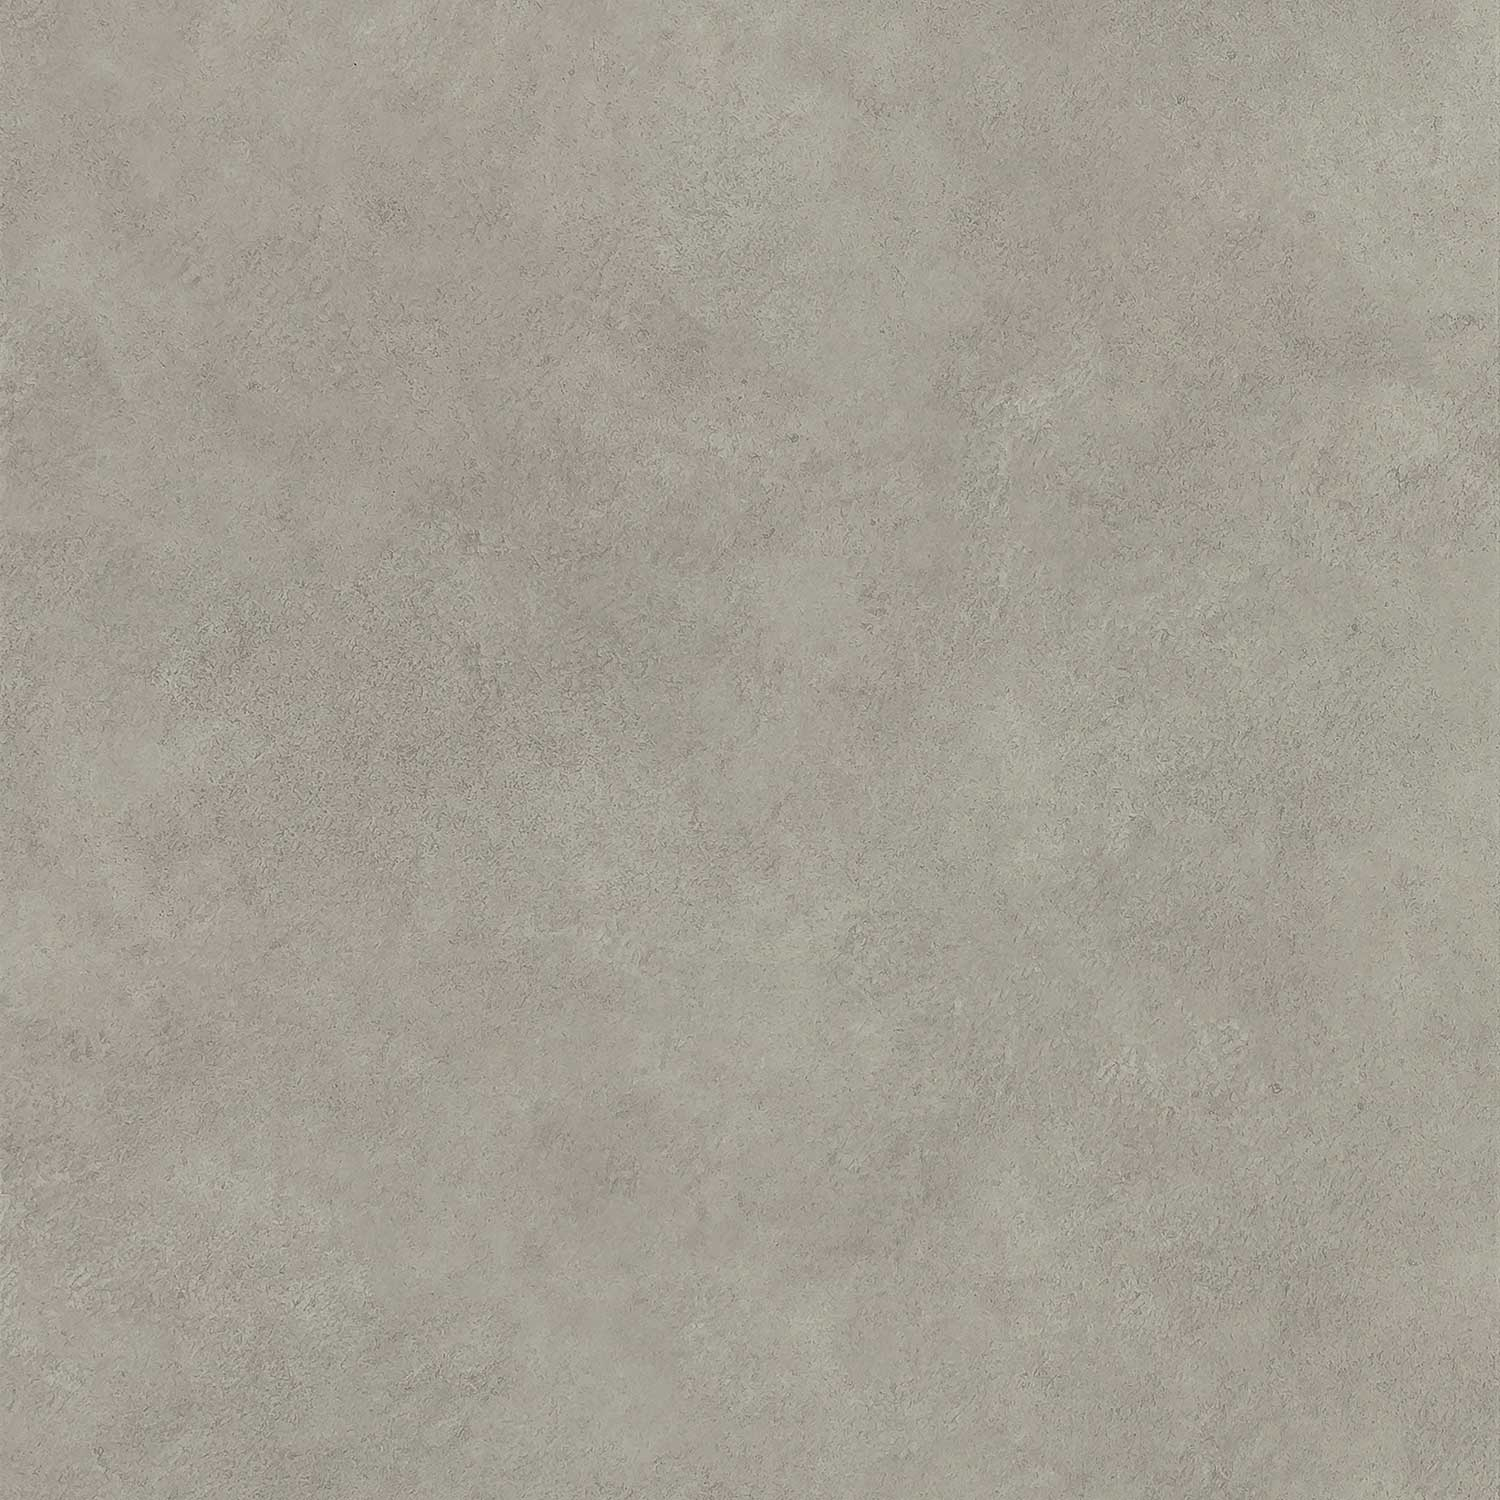 Misted Concrete 2845